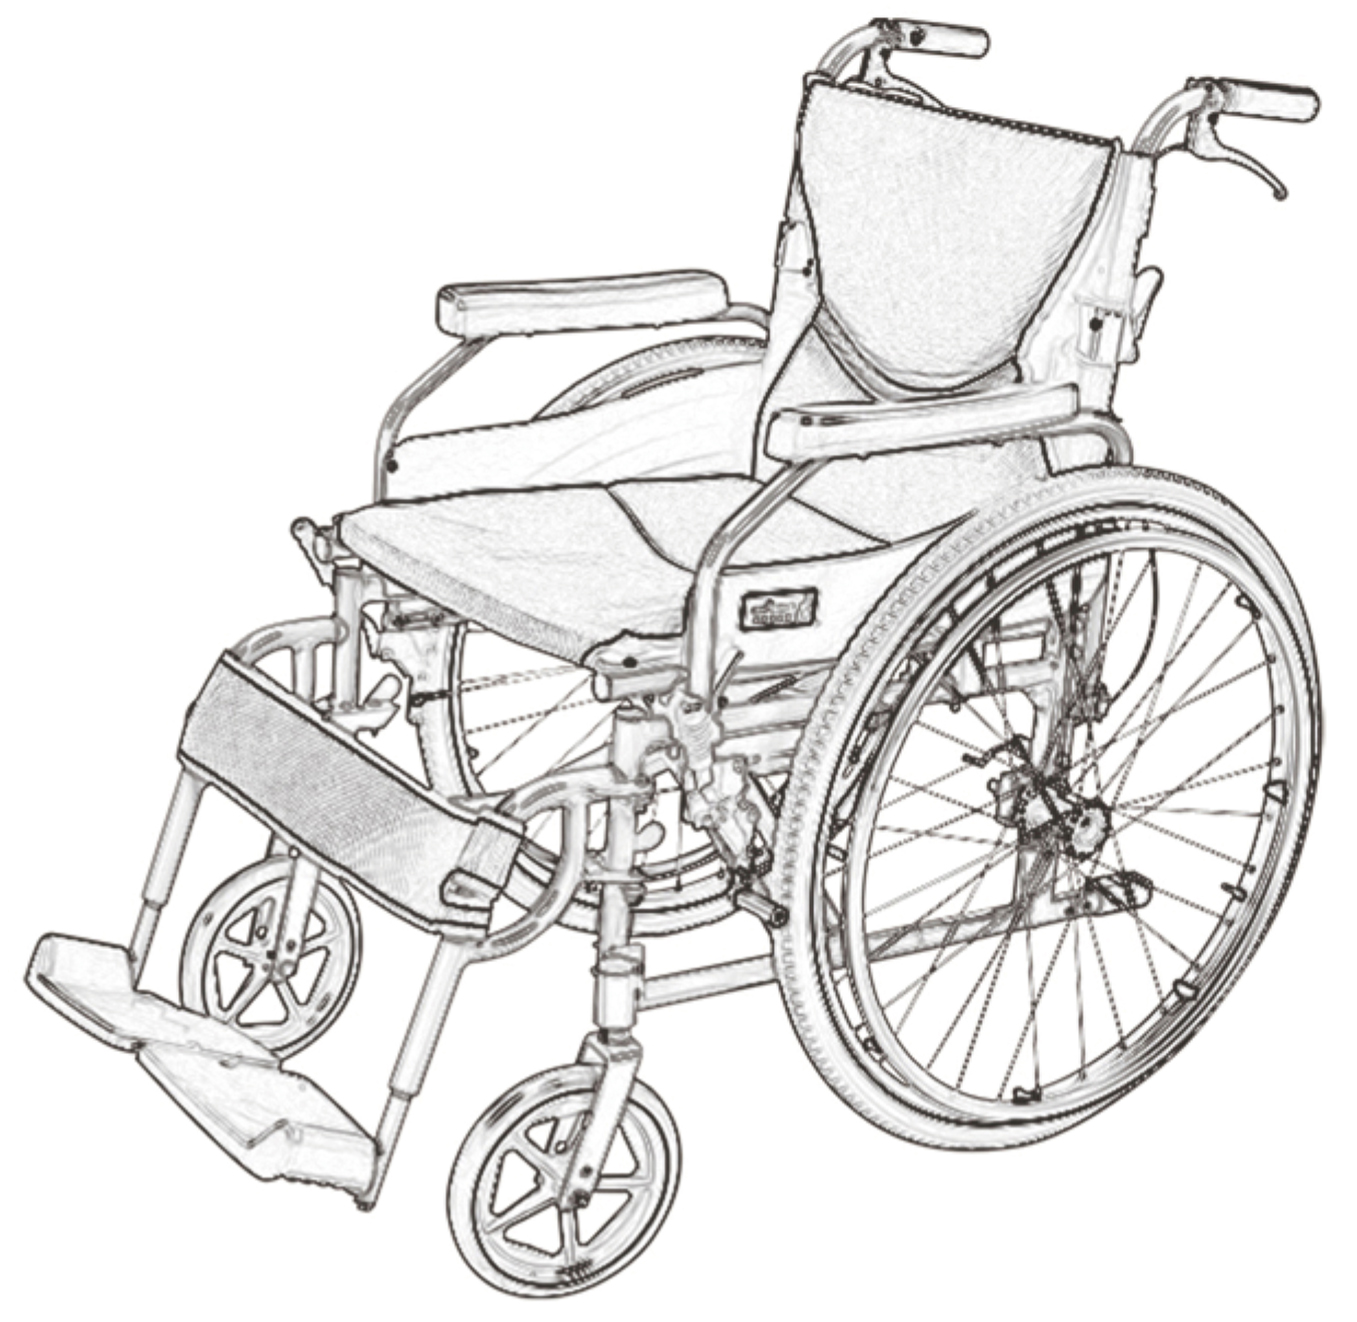 How to choose wheelchairs scientifically?